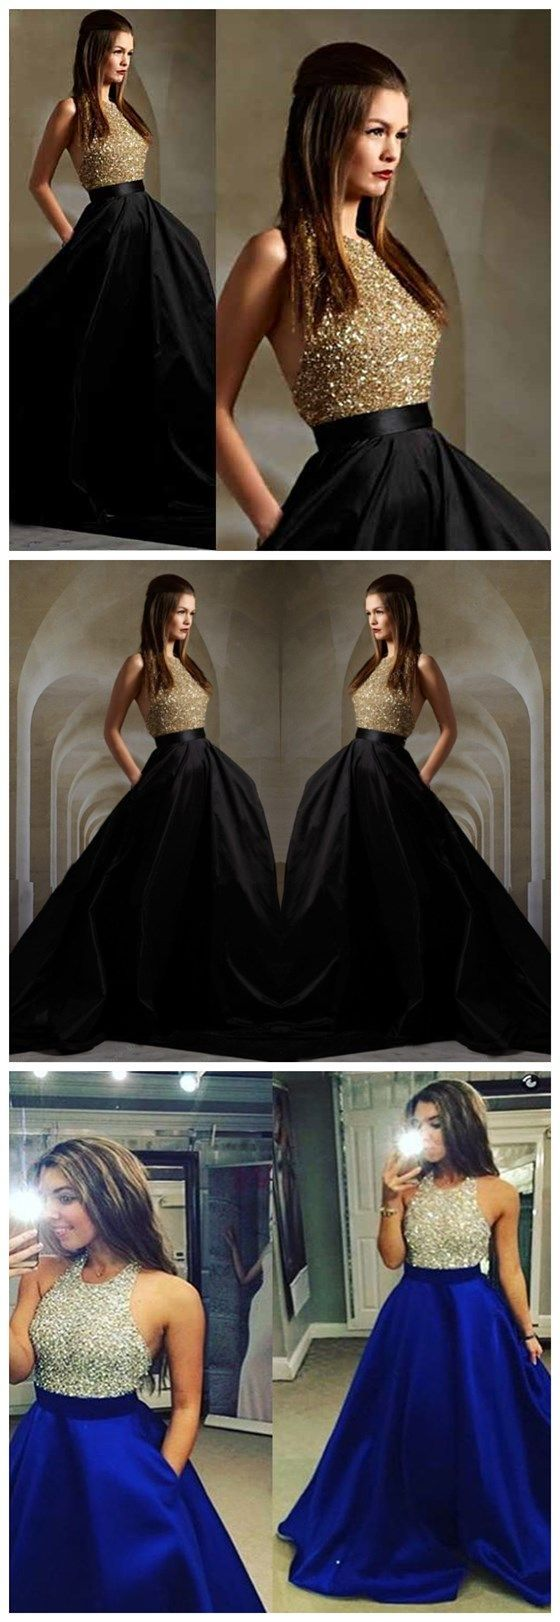 Halter prom dresses backless ball gown party dresses long satin